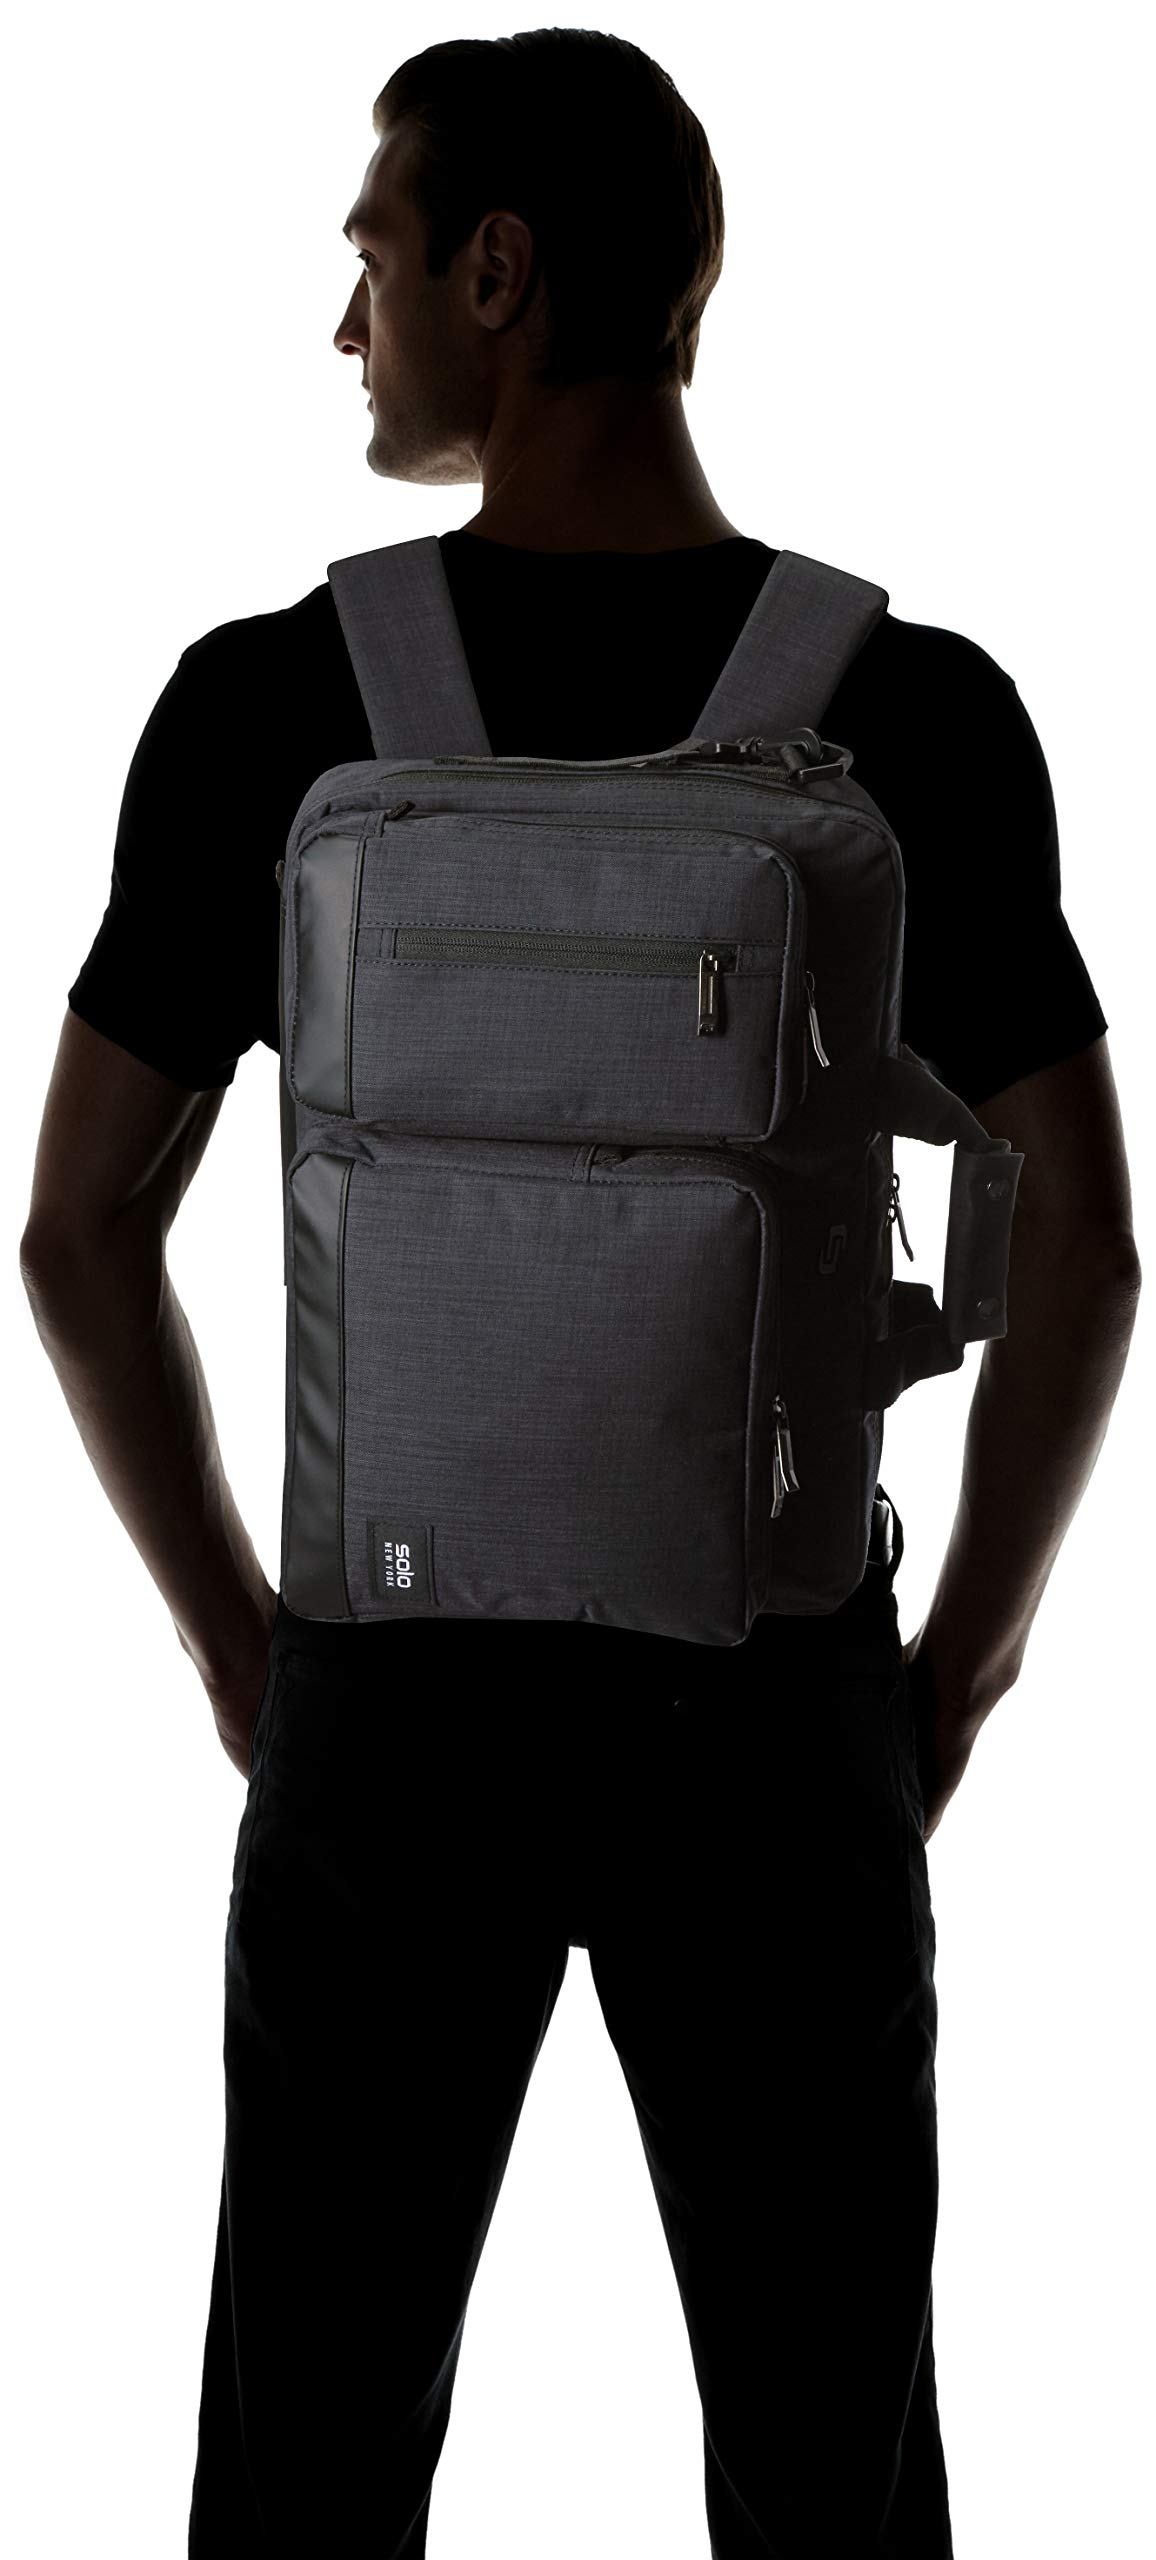 Solo Duane 15.6 Inch Laptop Hybrid Briefcase, Converts to Backpack, Slate, Amazon Exclusive by SOLO (Image #9)